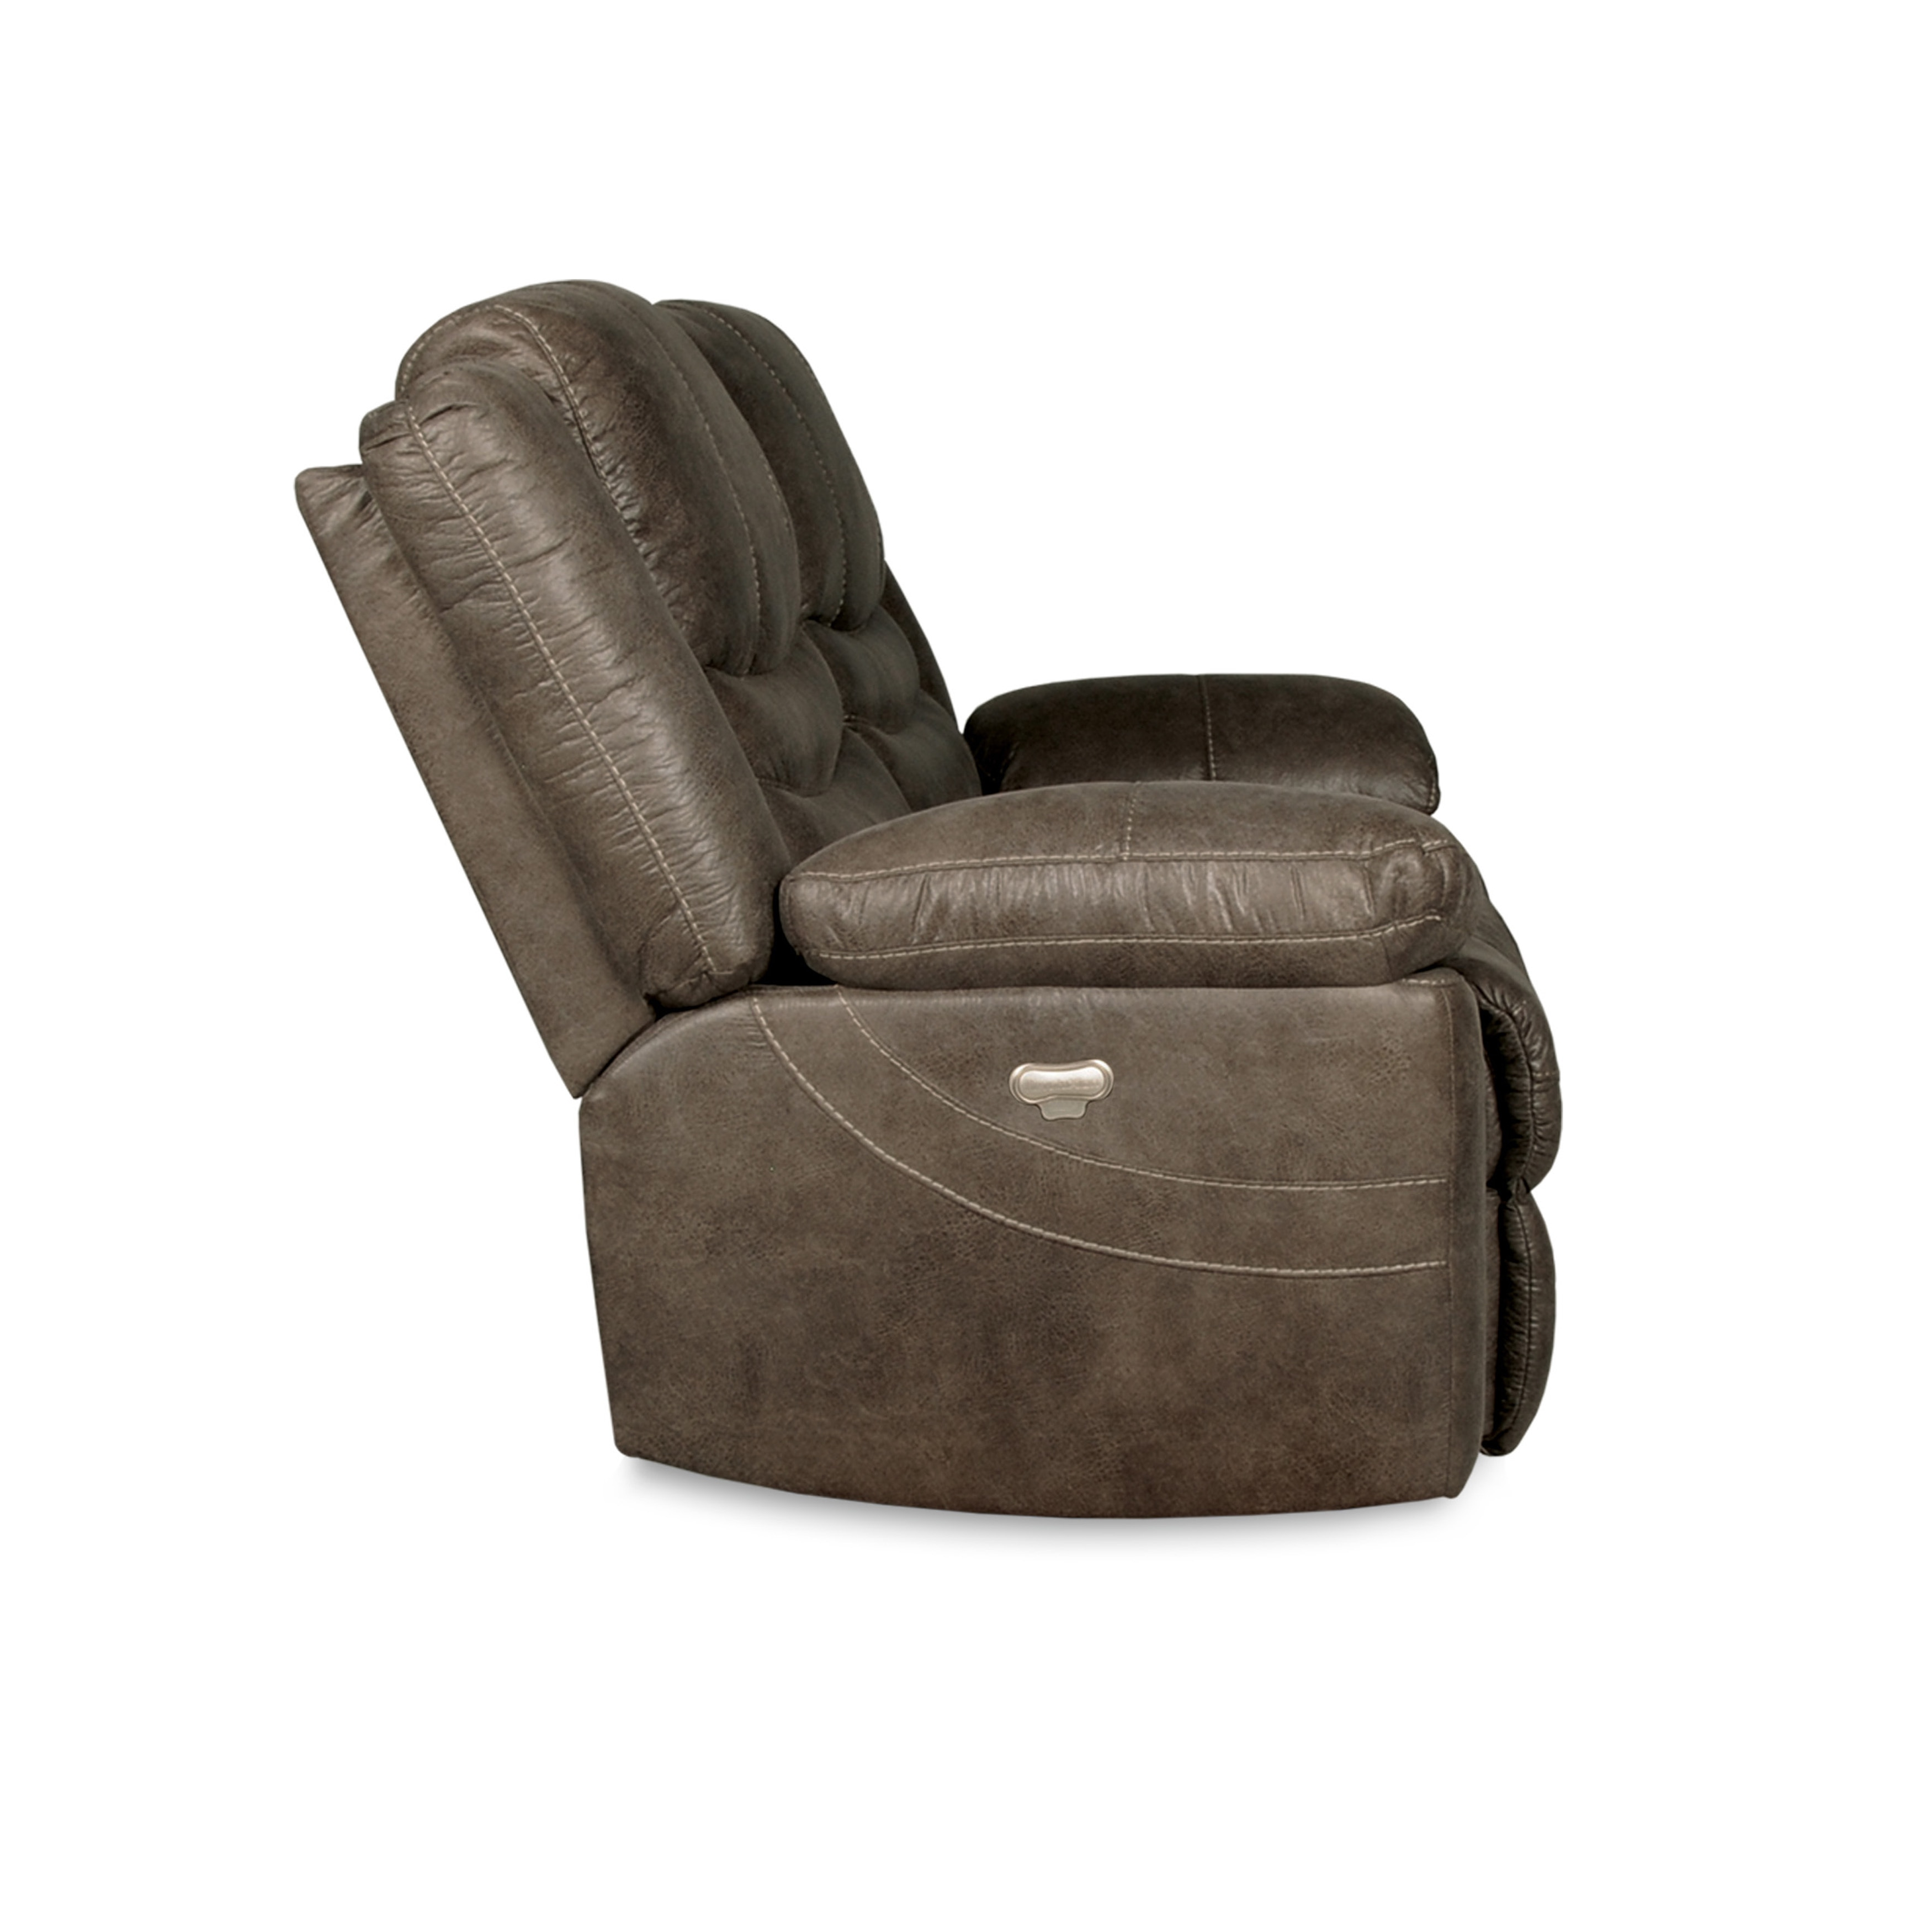 Noah Dual Rocking And Reclining Loveseat Free Shipping Today 14660978